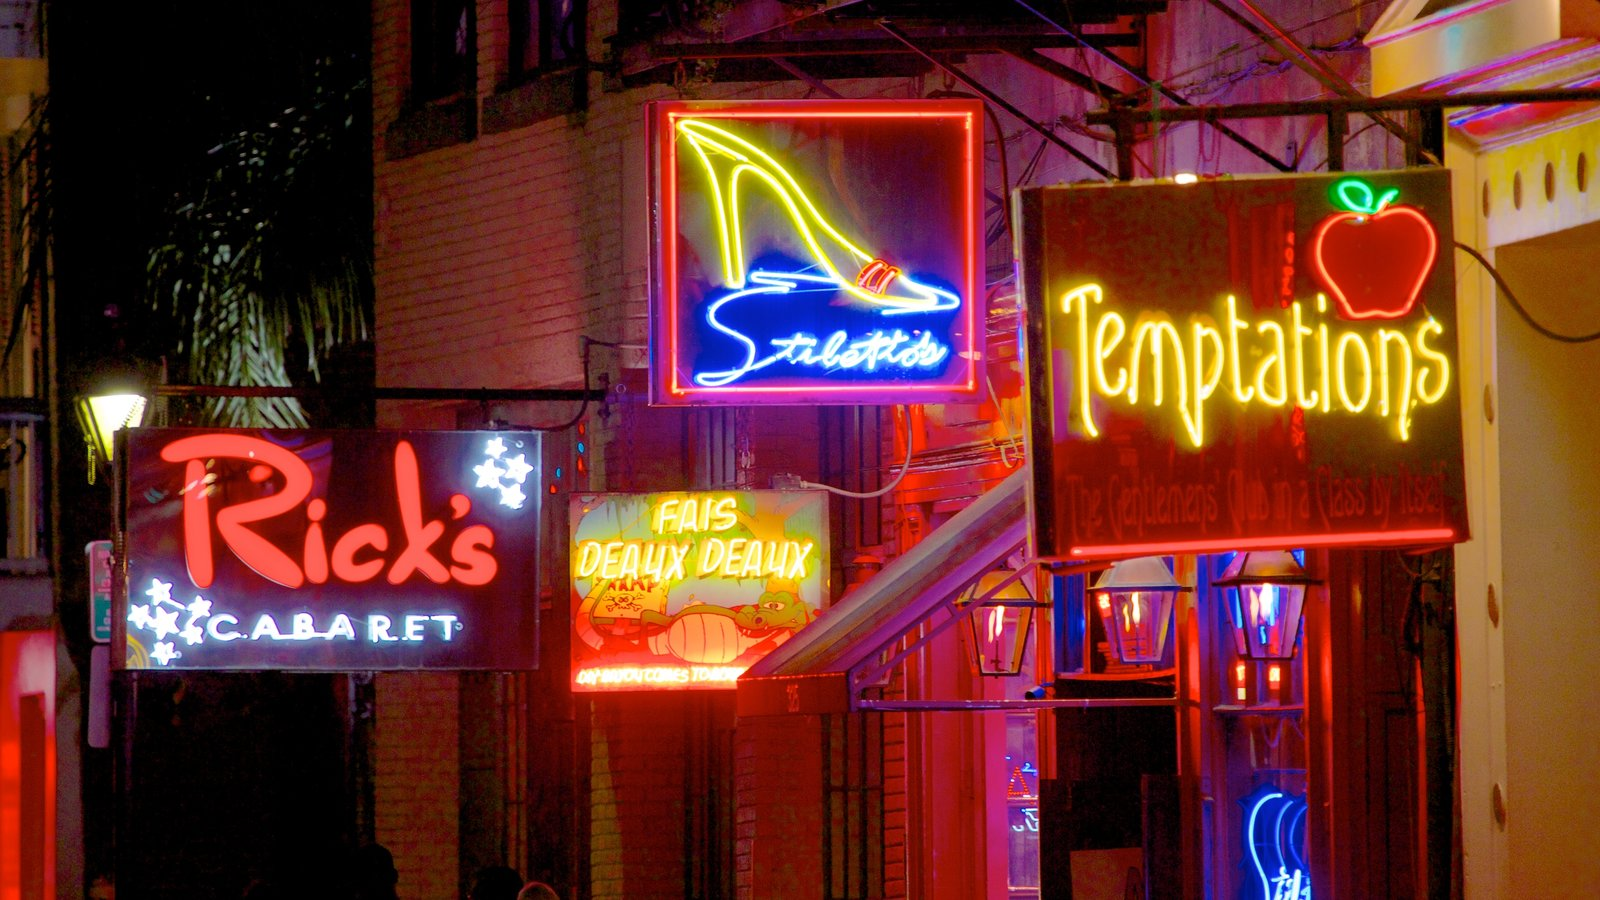 Bourbon Street featuring night scenes, street scenes and signage